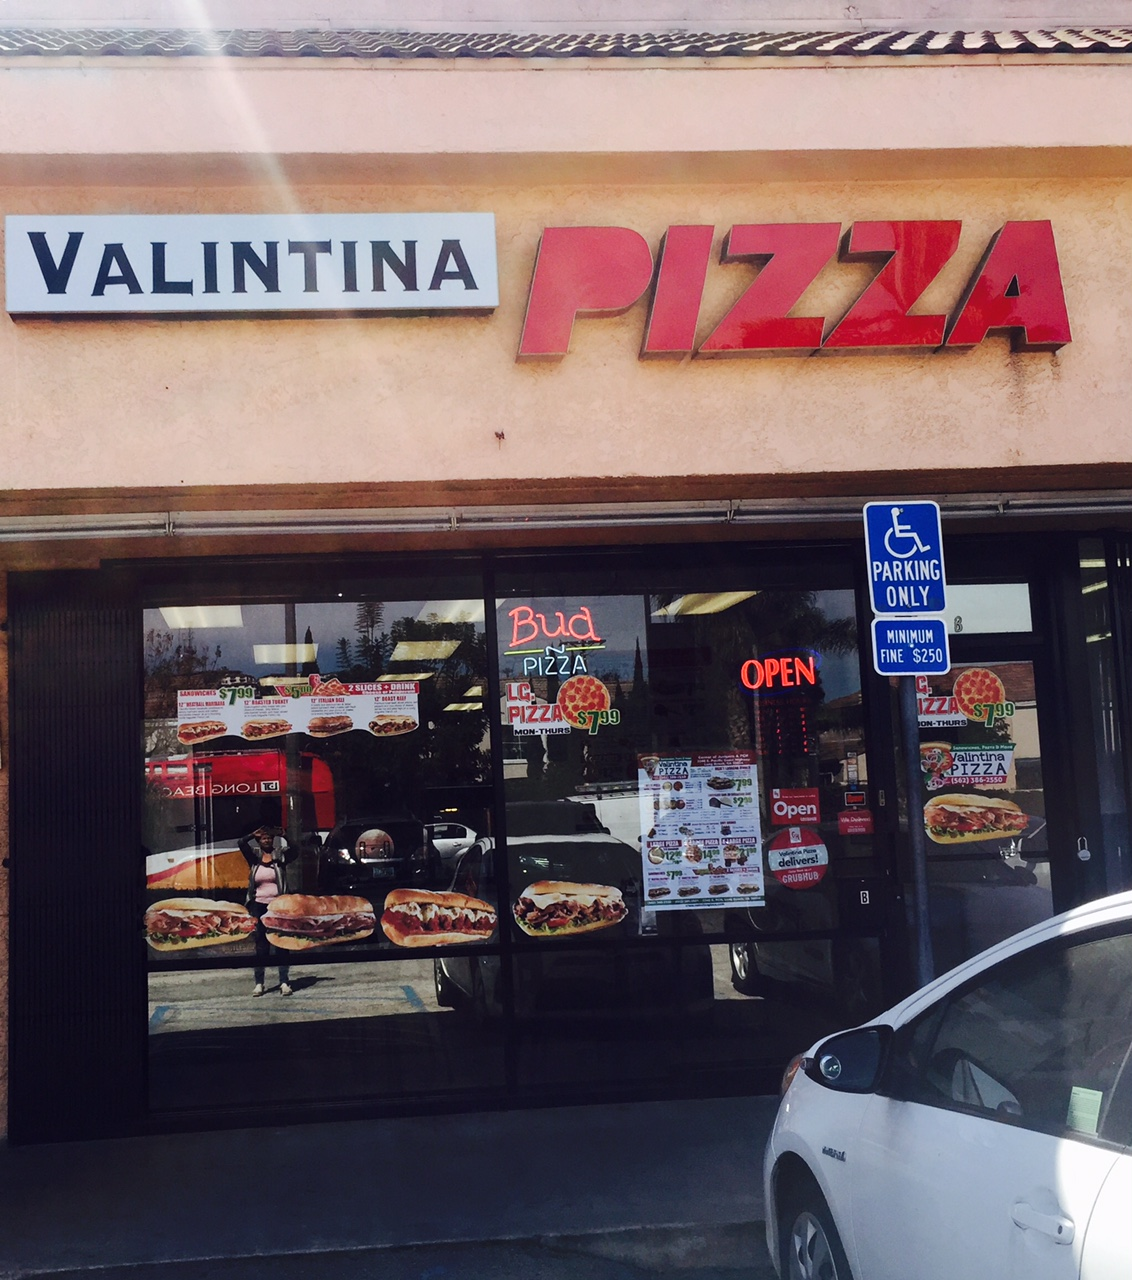 Valintina Pizza Shop Sign